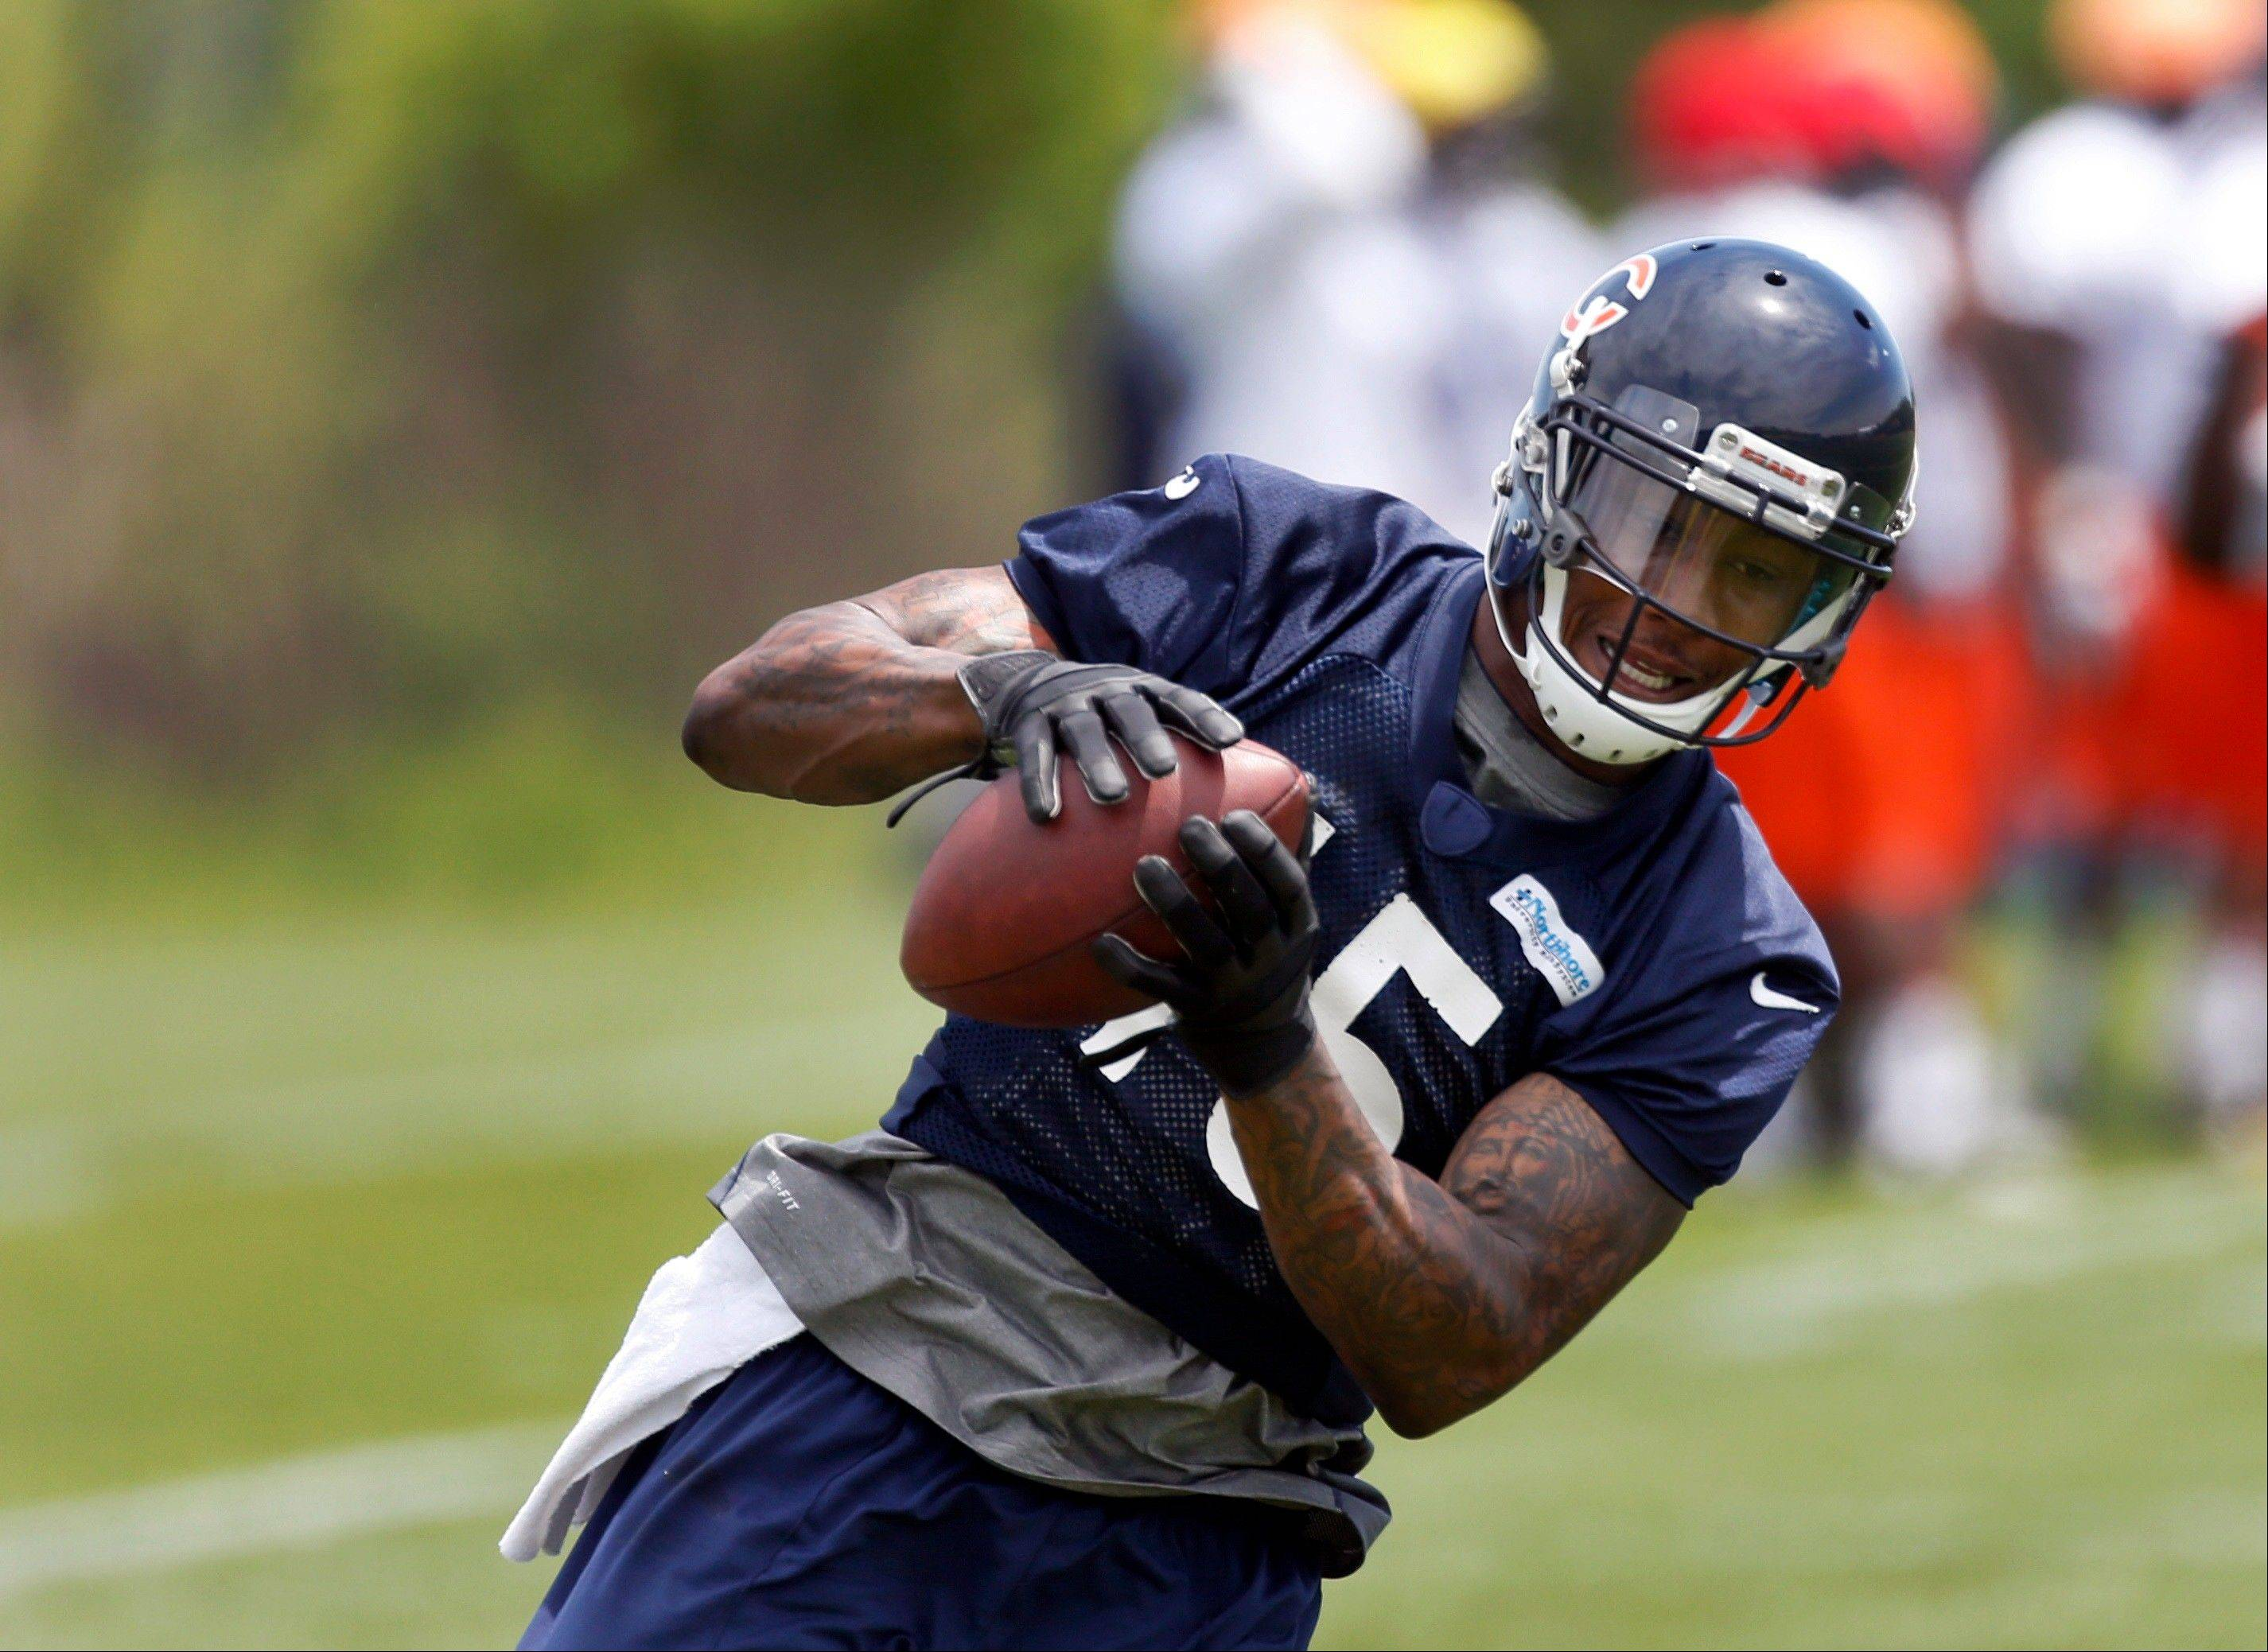 Bears wide receiver Brandon Marshall catches a pass during the Bears' NFL football practice Tuesday, June 4, 2013, in Lake Forest, Ill. Marshall returned to the field after his rehabilitation from hip surgery.